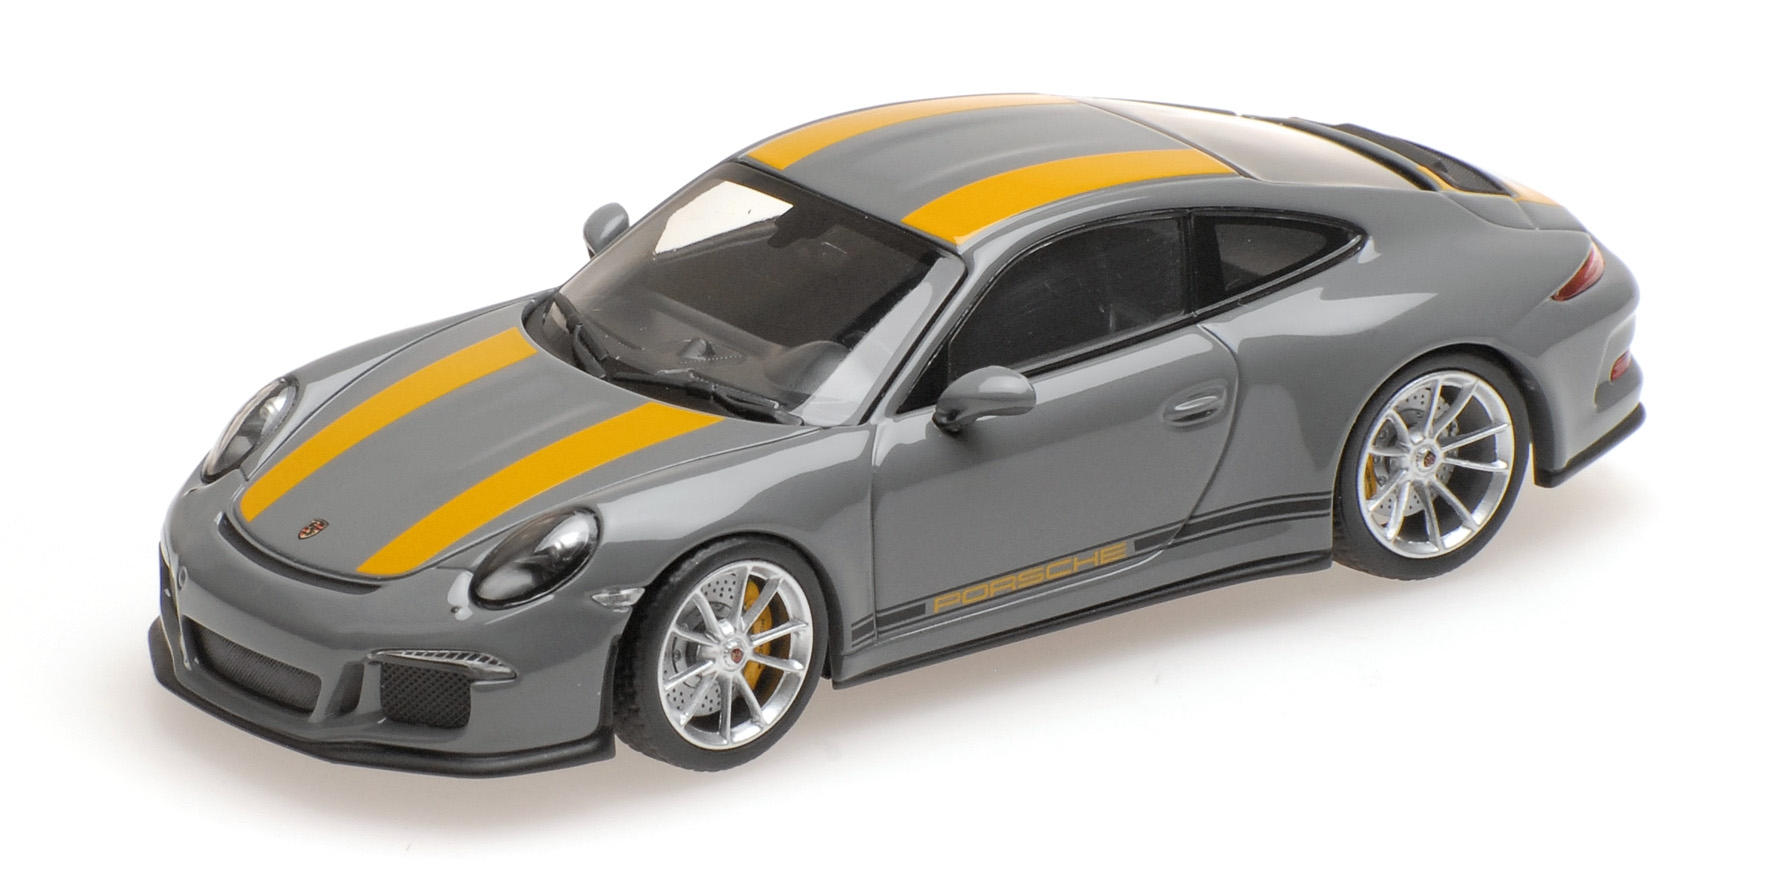 PORSCHE 911 R 2016 NARDOgris WITH jaune SIDEWAYS Minichamps 410066232